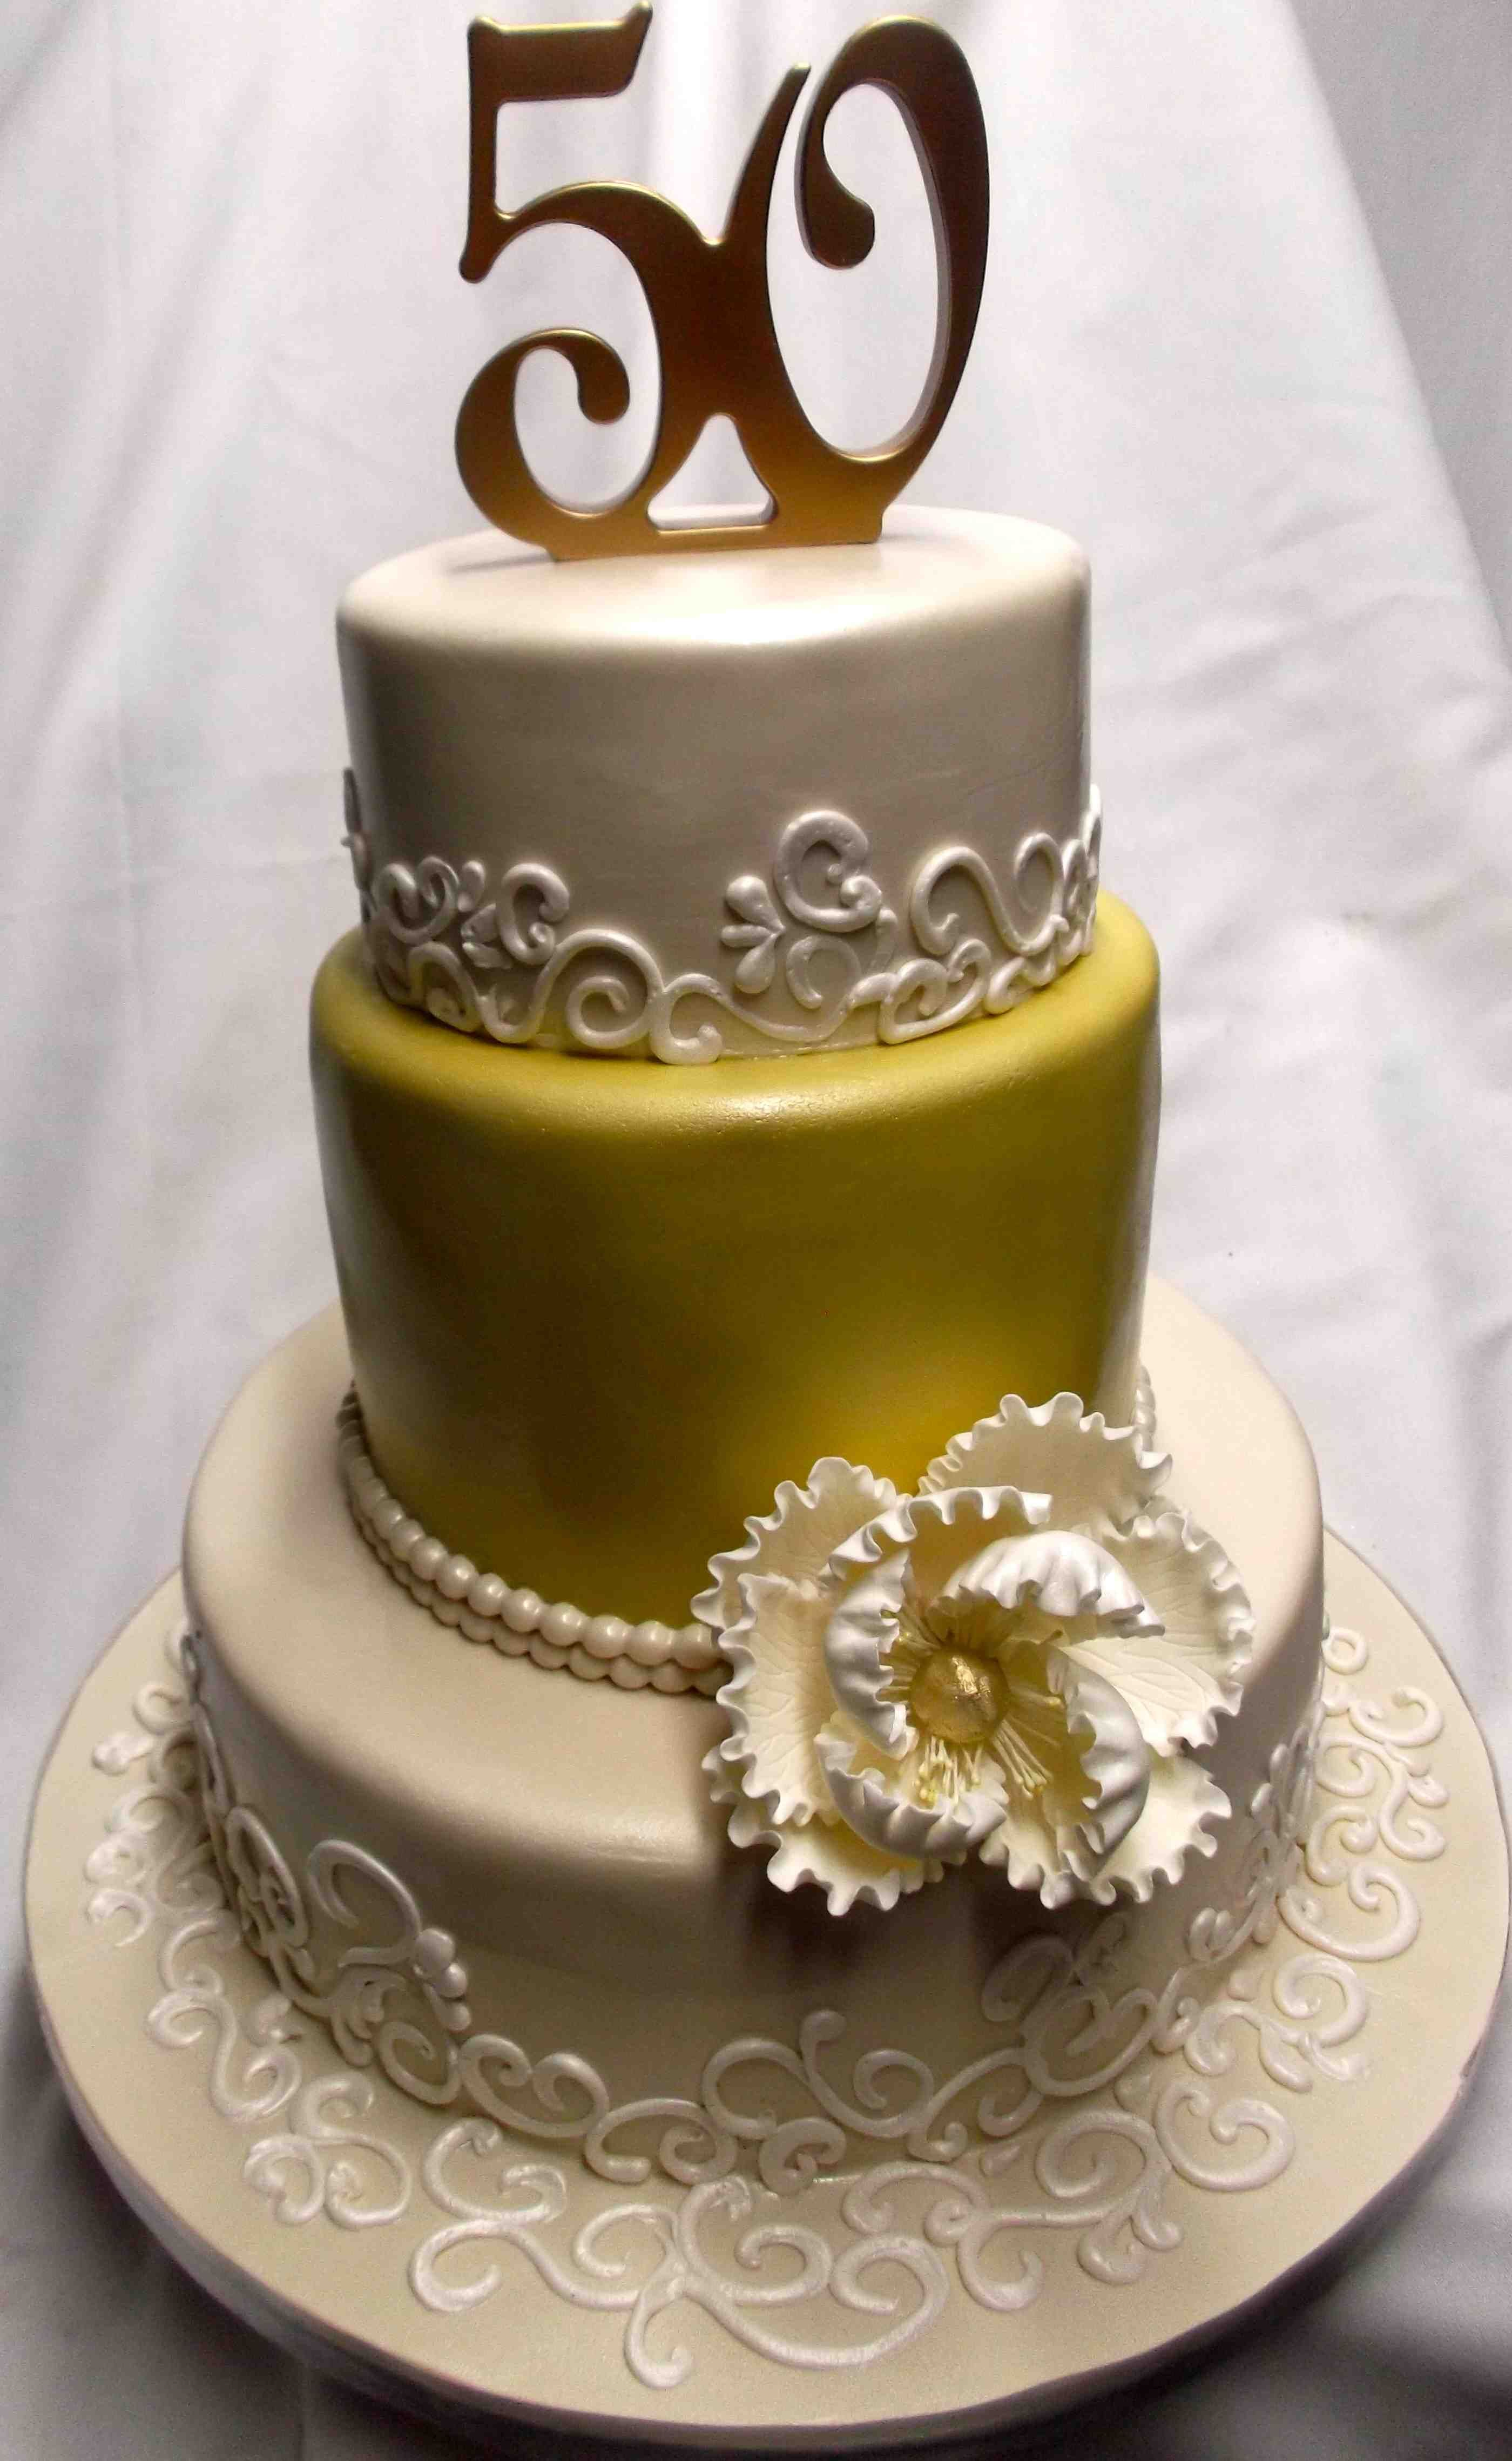 10+ 50th anniversary cakes images trends